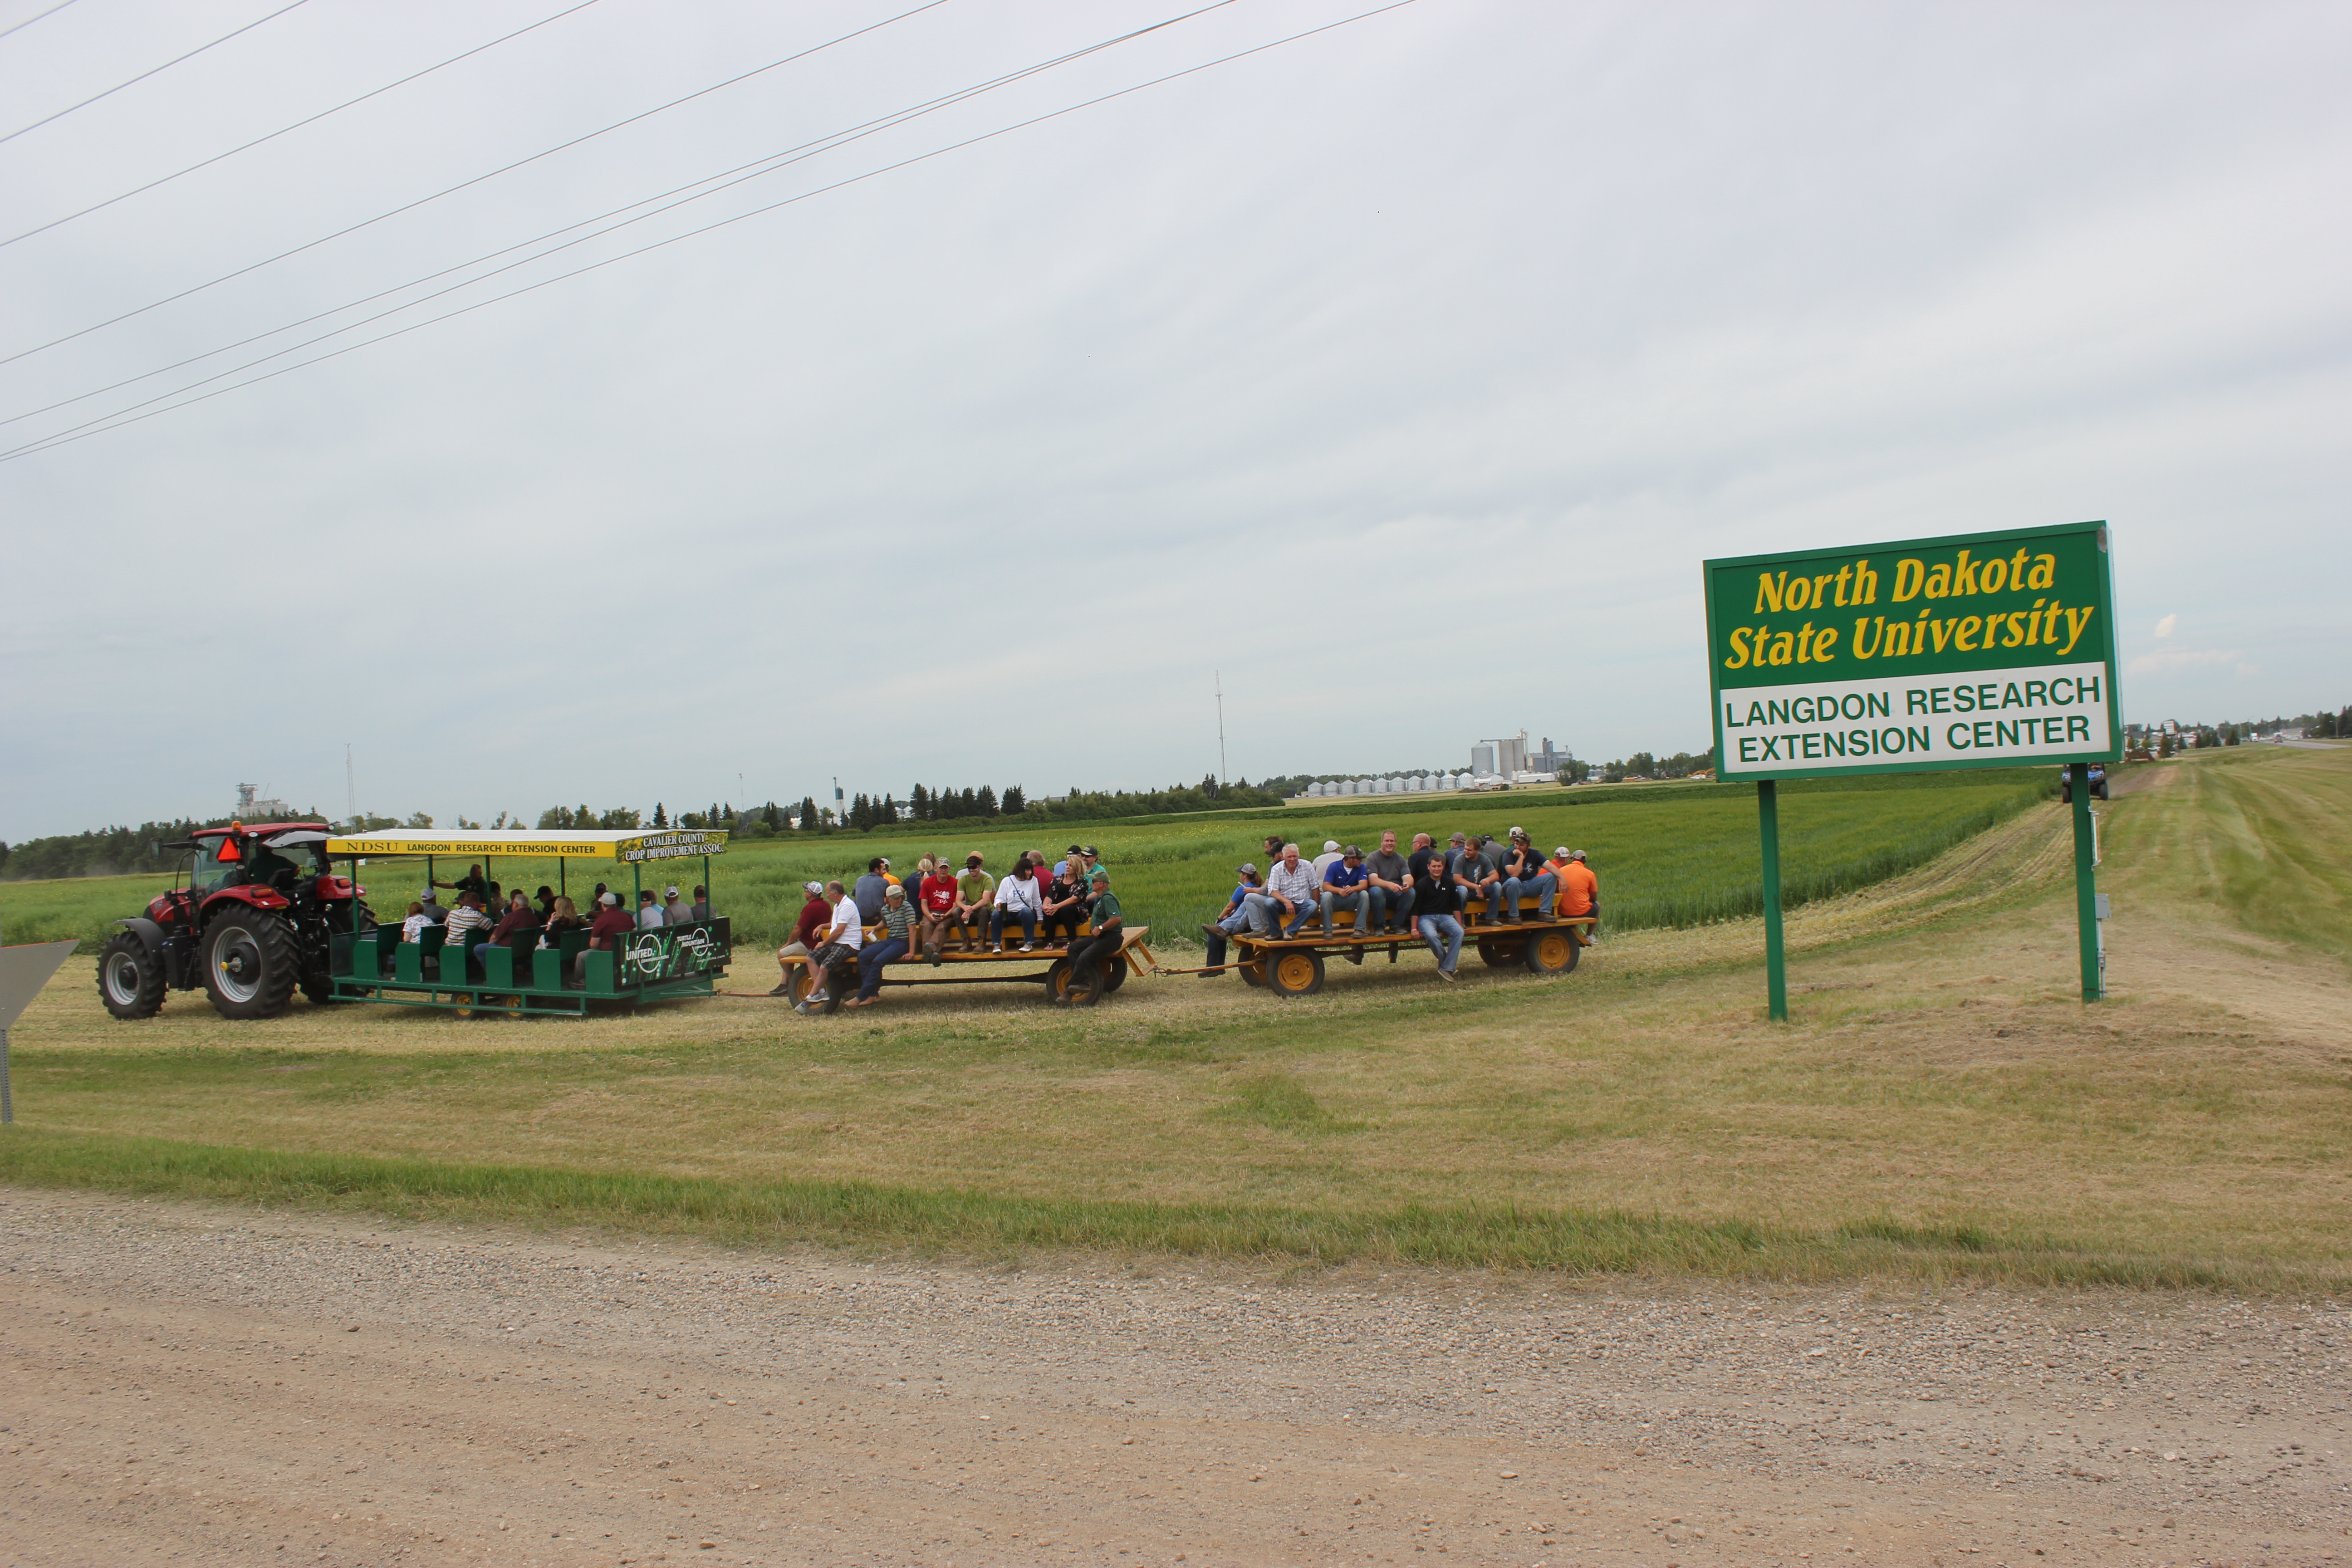 Visitors take part in a tour during a field day at NDSU's Langdon Research Extension Center. (NDSU photo)